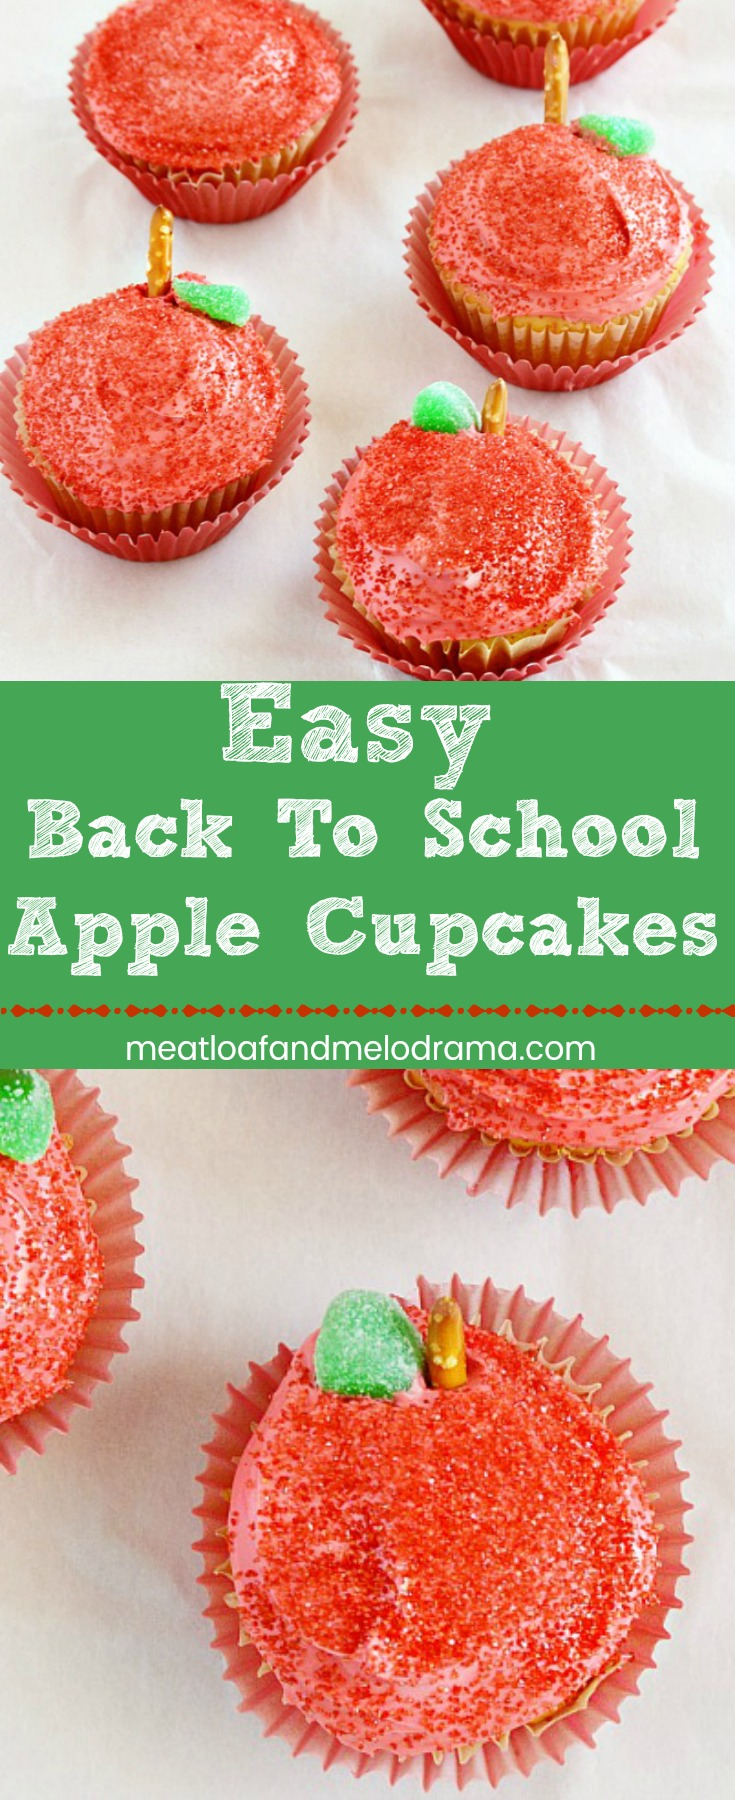 Easy Back to School Apple Cupcakes - With red sugar frosting, pretzel stems and candy leaves, these easy treats are perfect for an easy dessert or classroom celebration